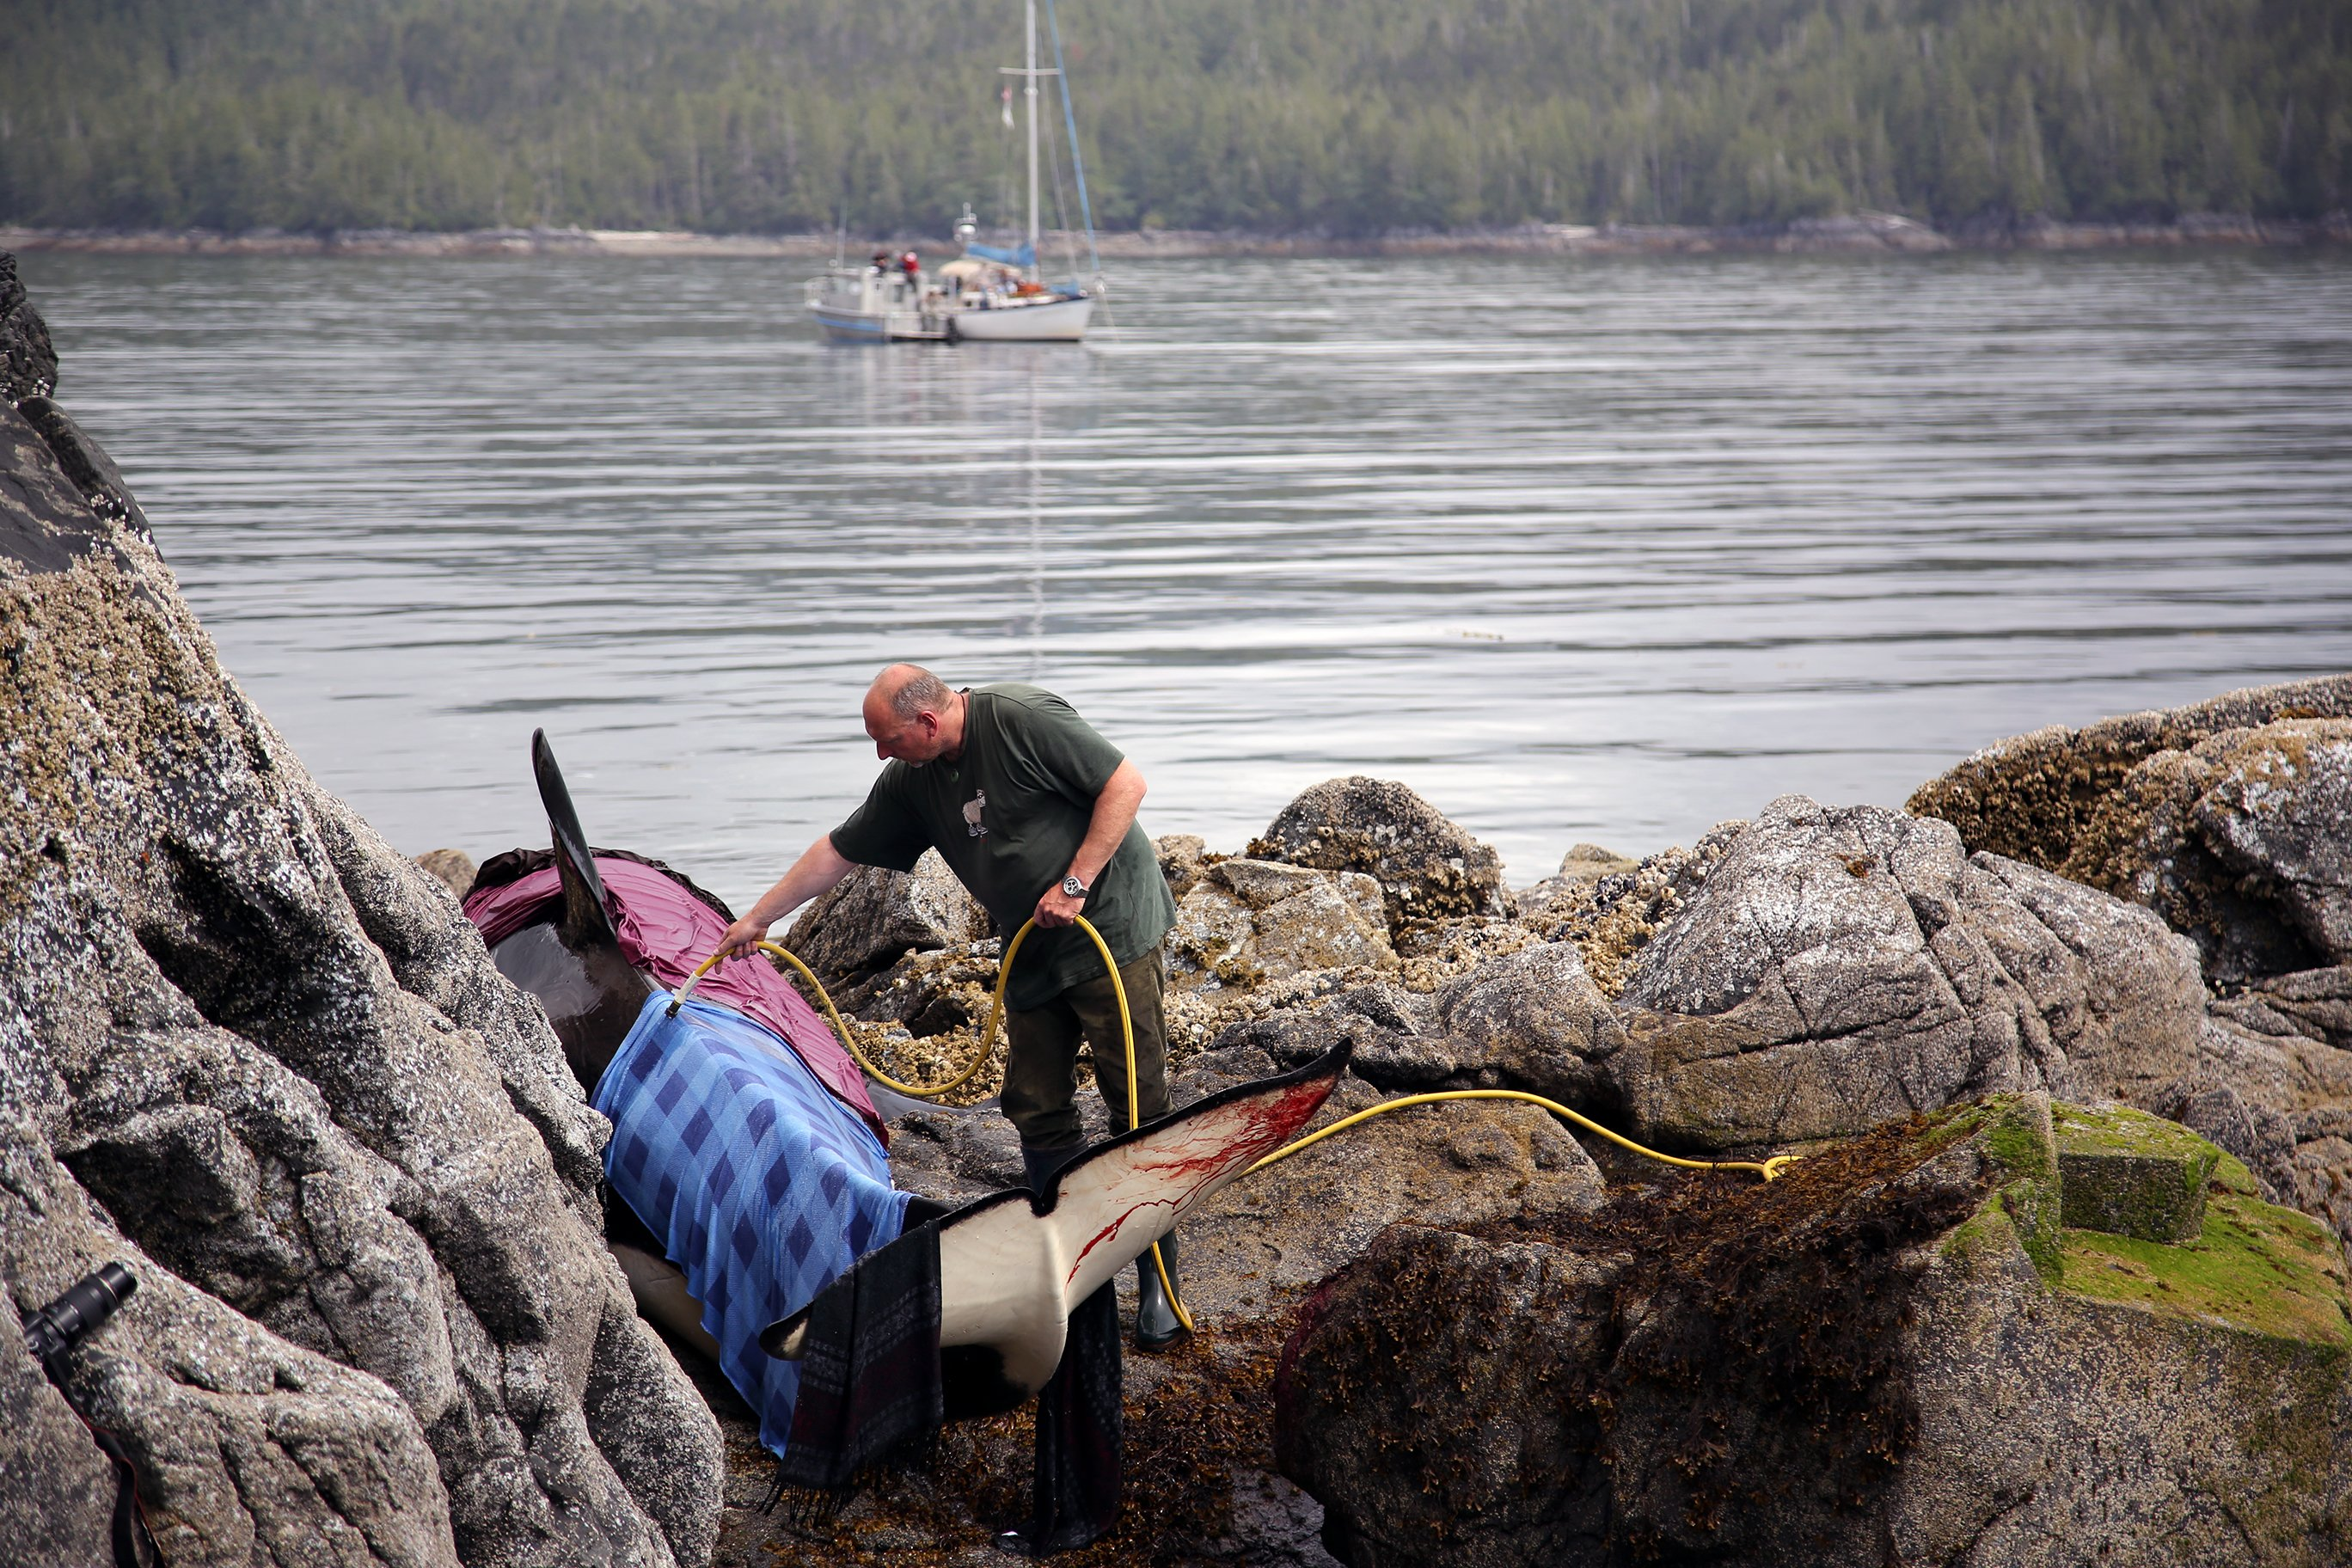 Orca whale being cared for by volunteers